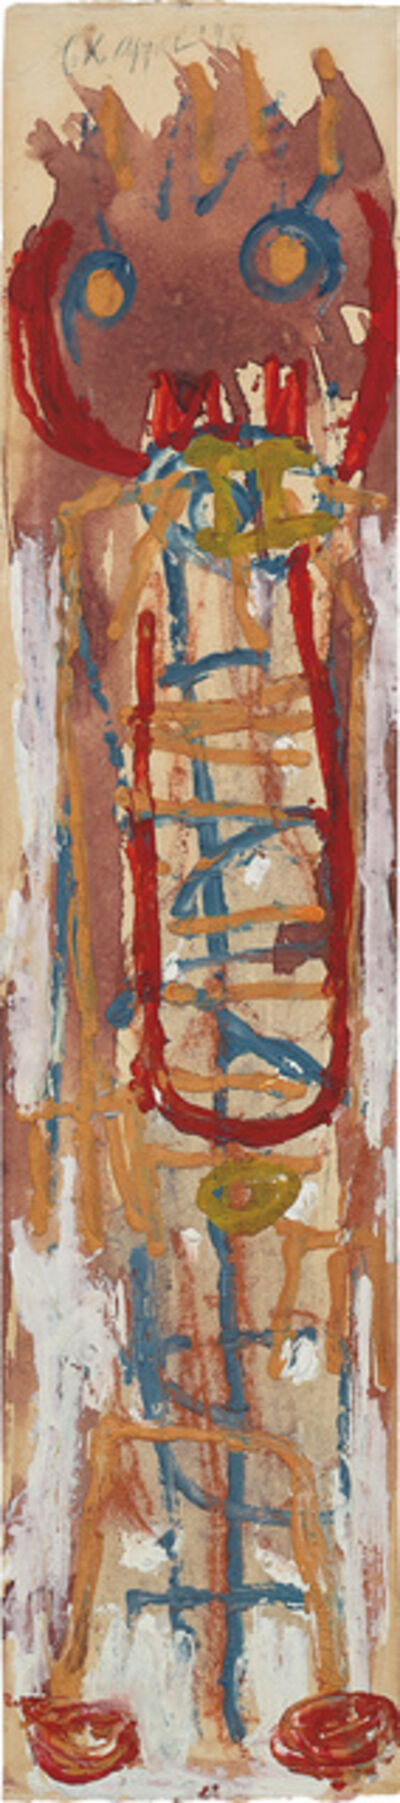 Karel Appel, 'Laddermannetje', 1948